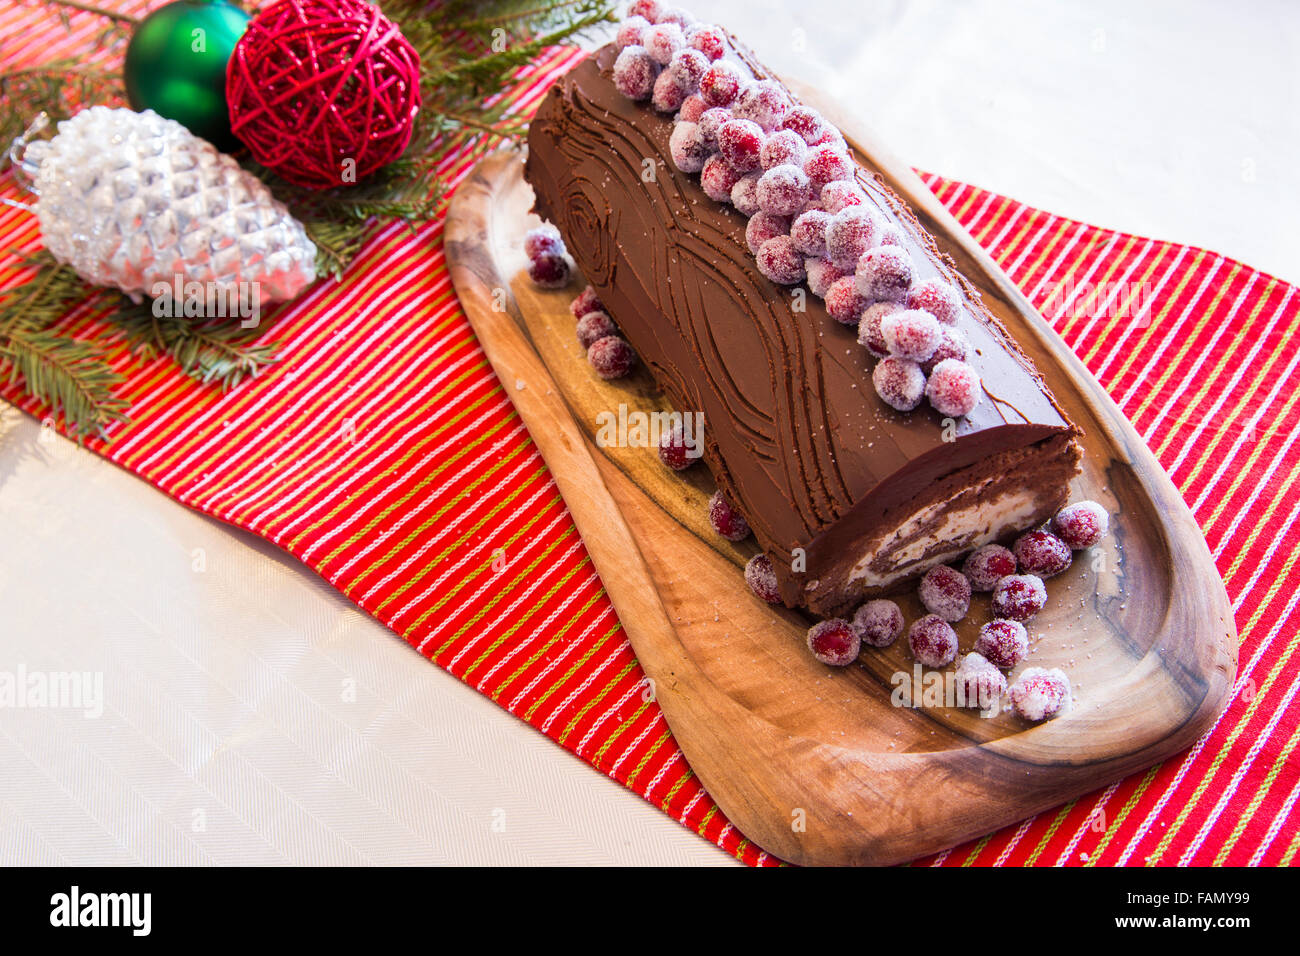 Buche de noel cake with christmas decoration stock photo 92658869 alamy - Buche de noel decorations ...